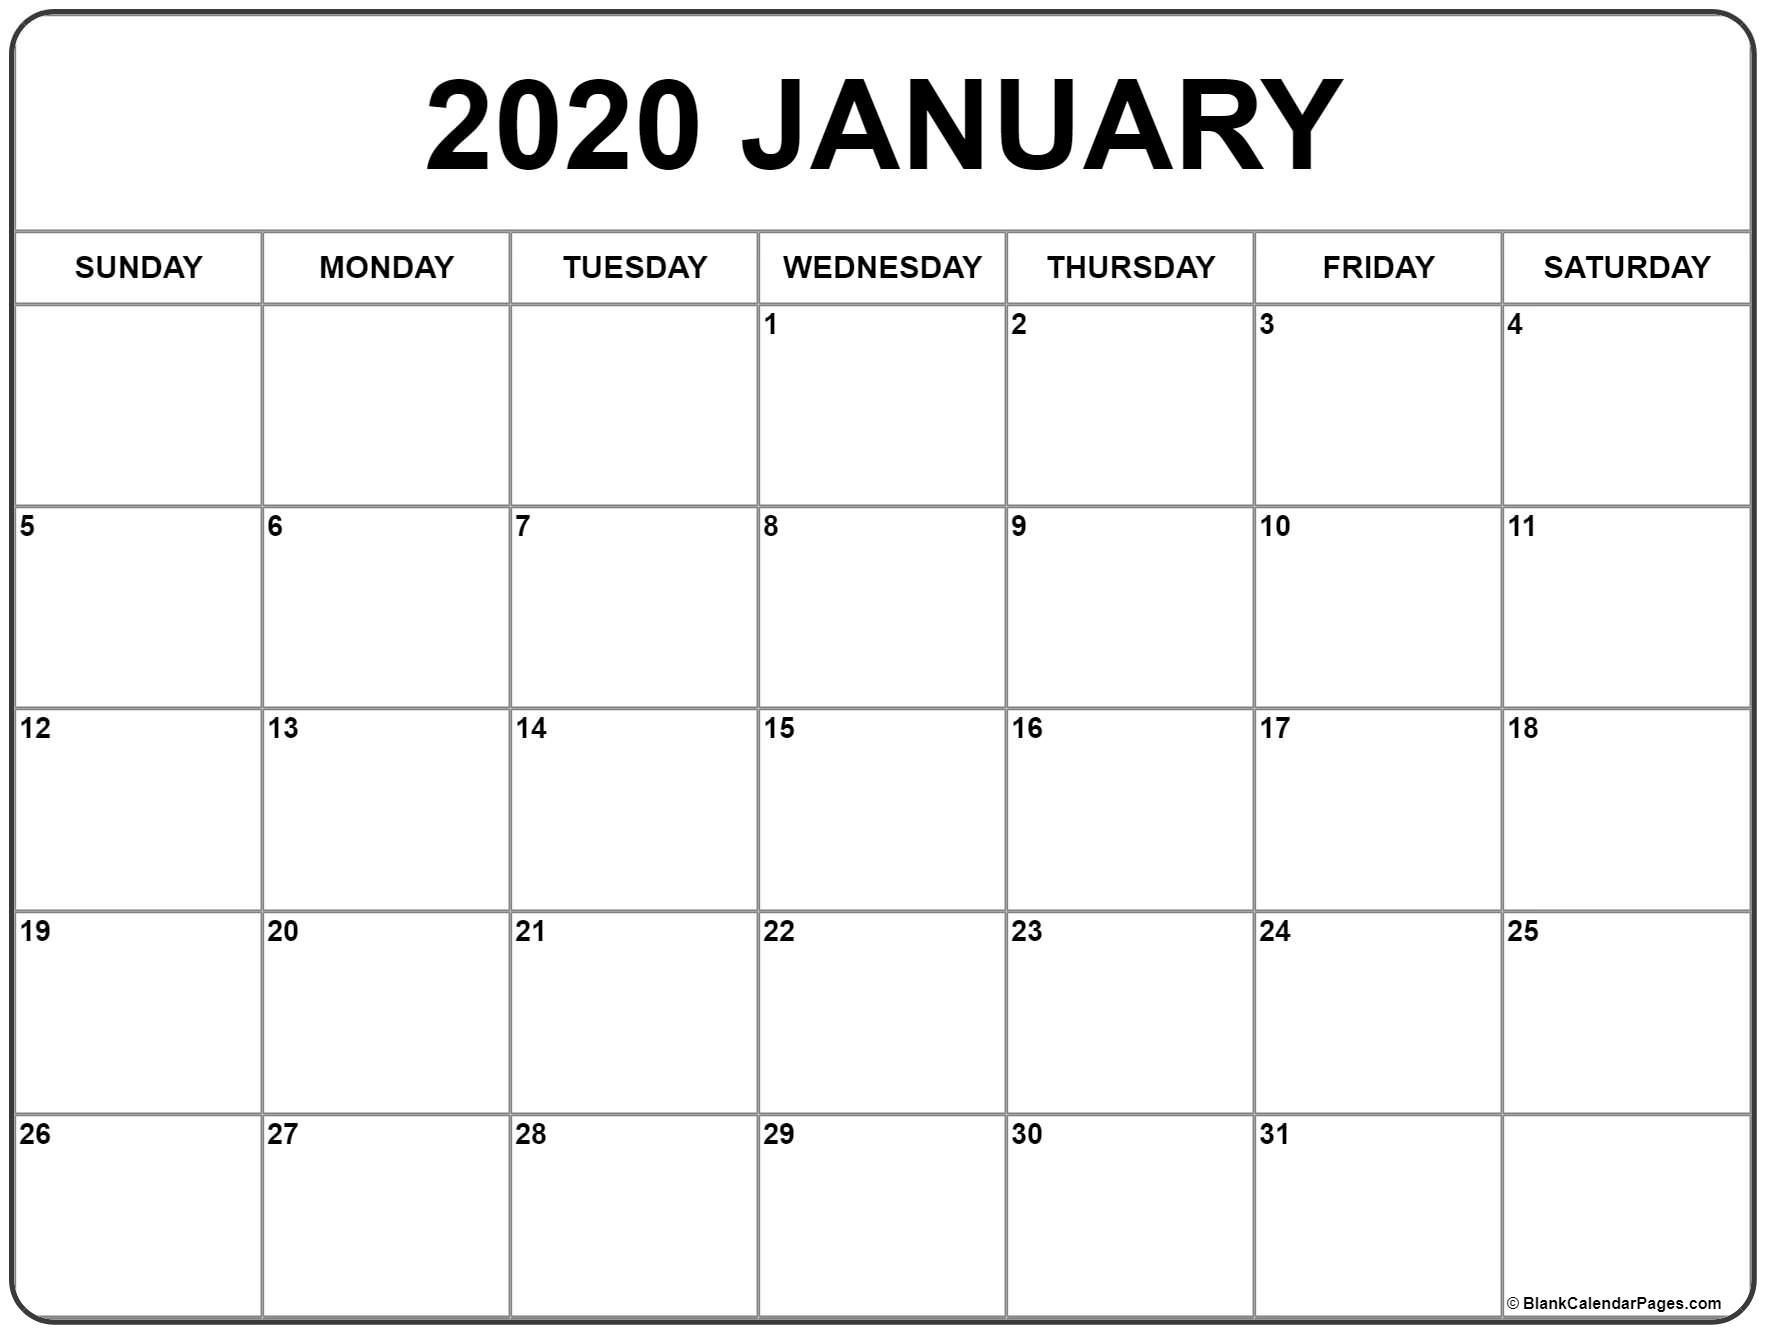 January 2020 Calendar | Free Printable Monthly Calendars-January 2020 Calendar New Zealand